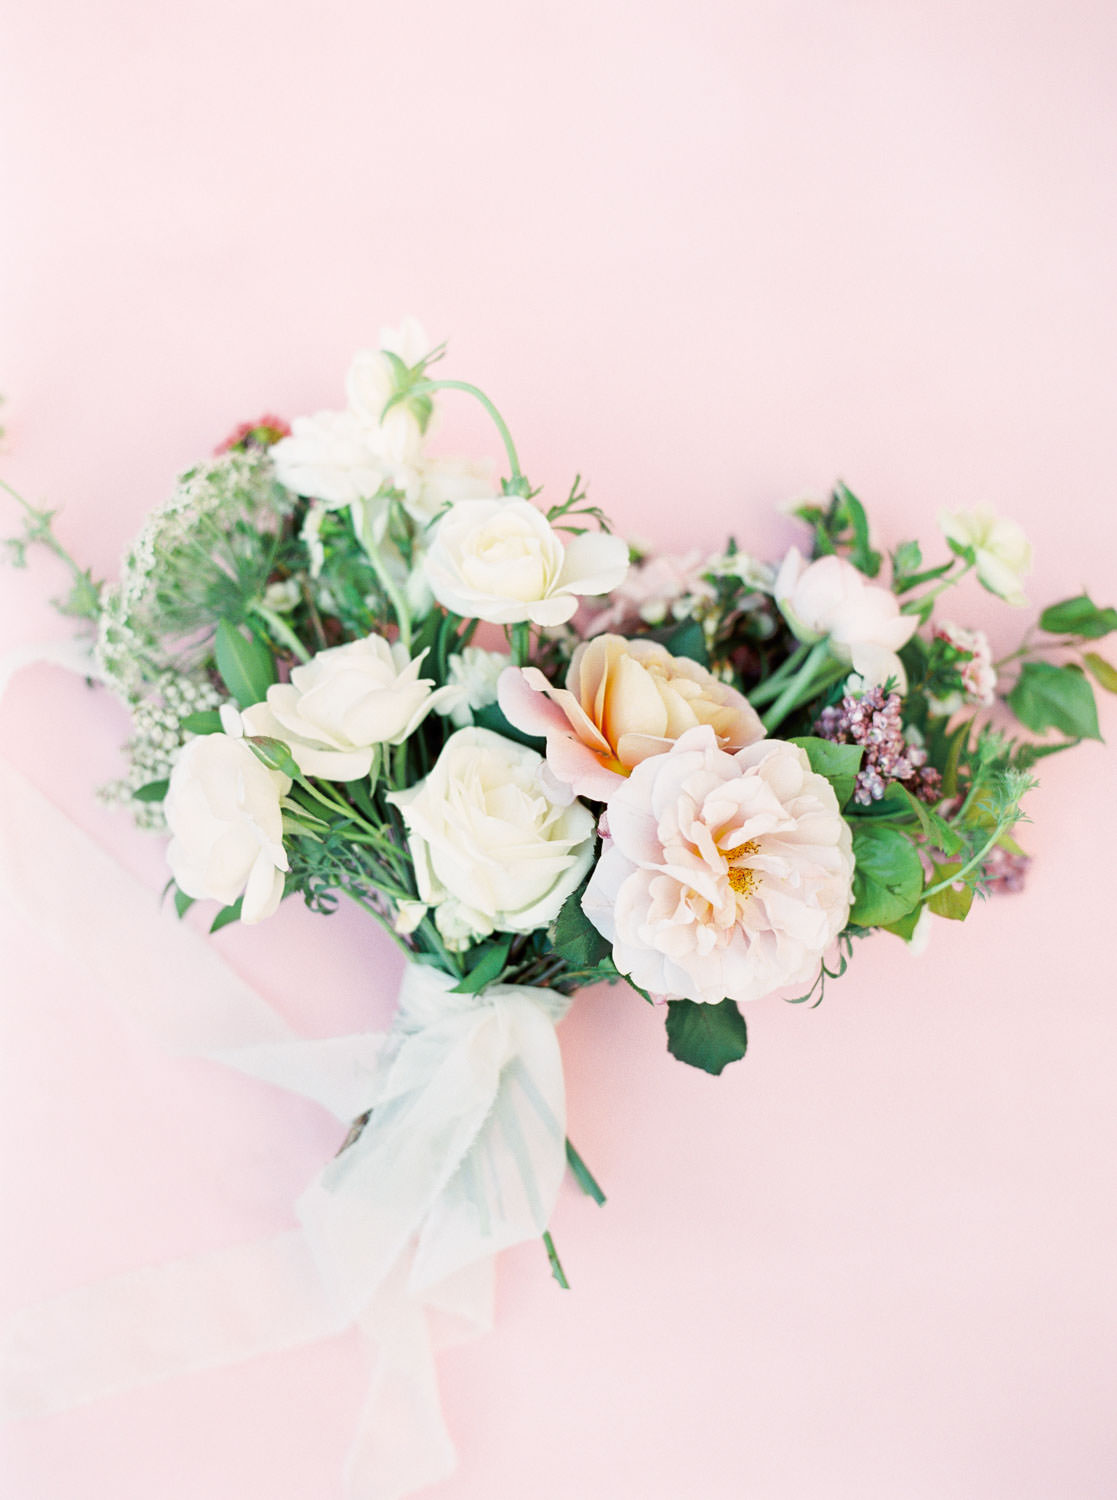 Bridal bouquet with blush peach white and green and sheer chiffon ribbons, Pink backdrop wedding editorial on medium format Contax 645 Fuji 400h film by Cavin Elizabeth Photography